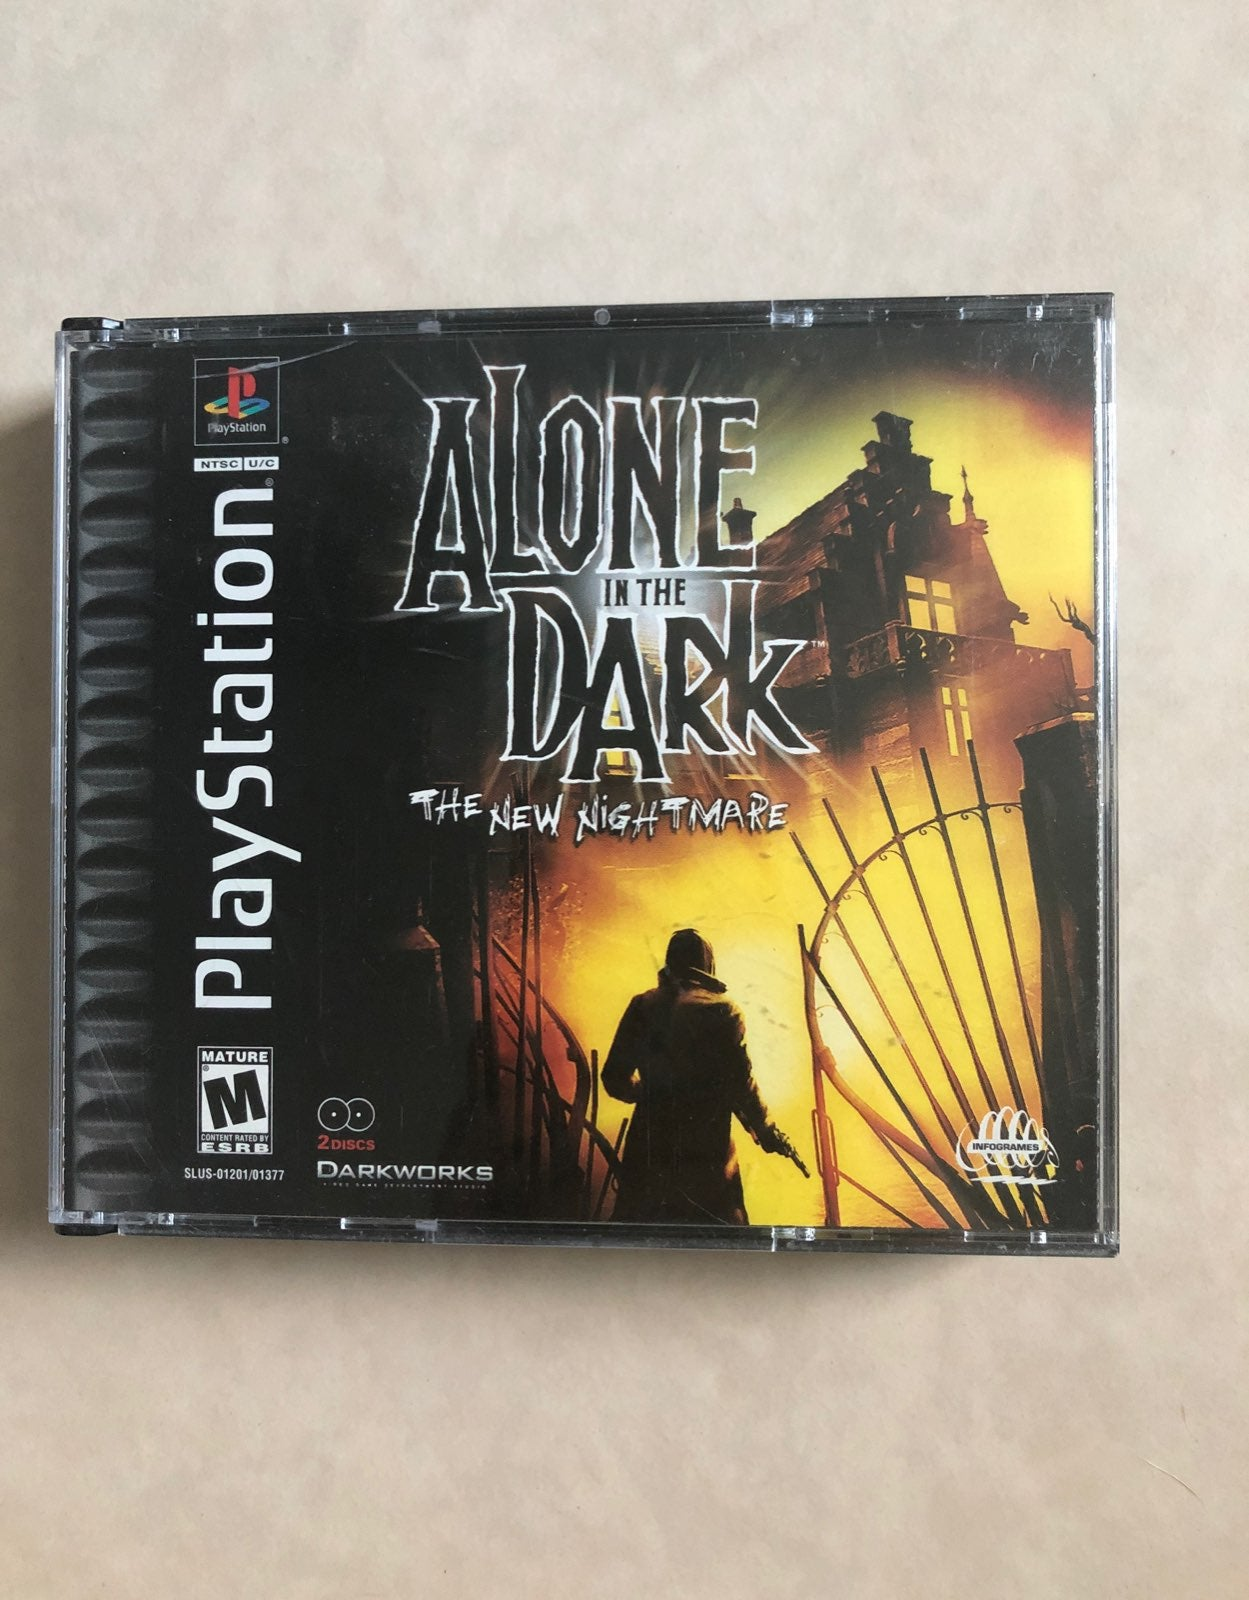 Alone In The Dark for the PS1